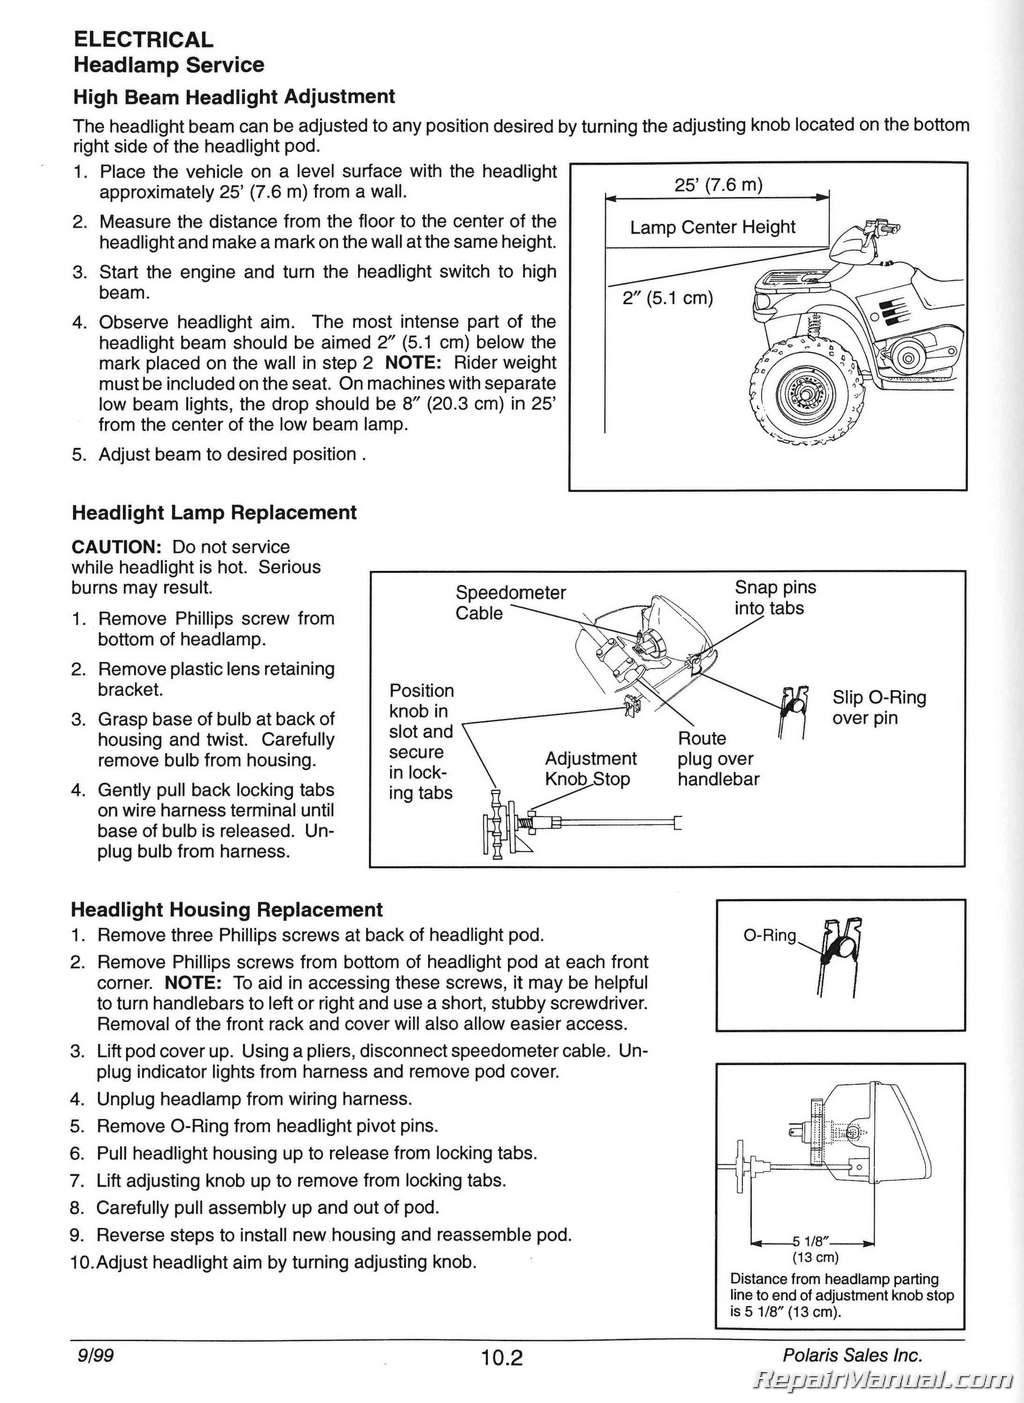 Arctic Cat Snowmobile Stator Repair Today Manual Guide Trends Sample Panther Wiring Diagram 1996 2000 Polaris Sportsman 335 500 Atv Service 1973 400 2001